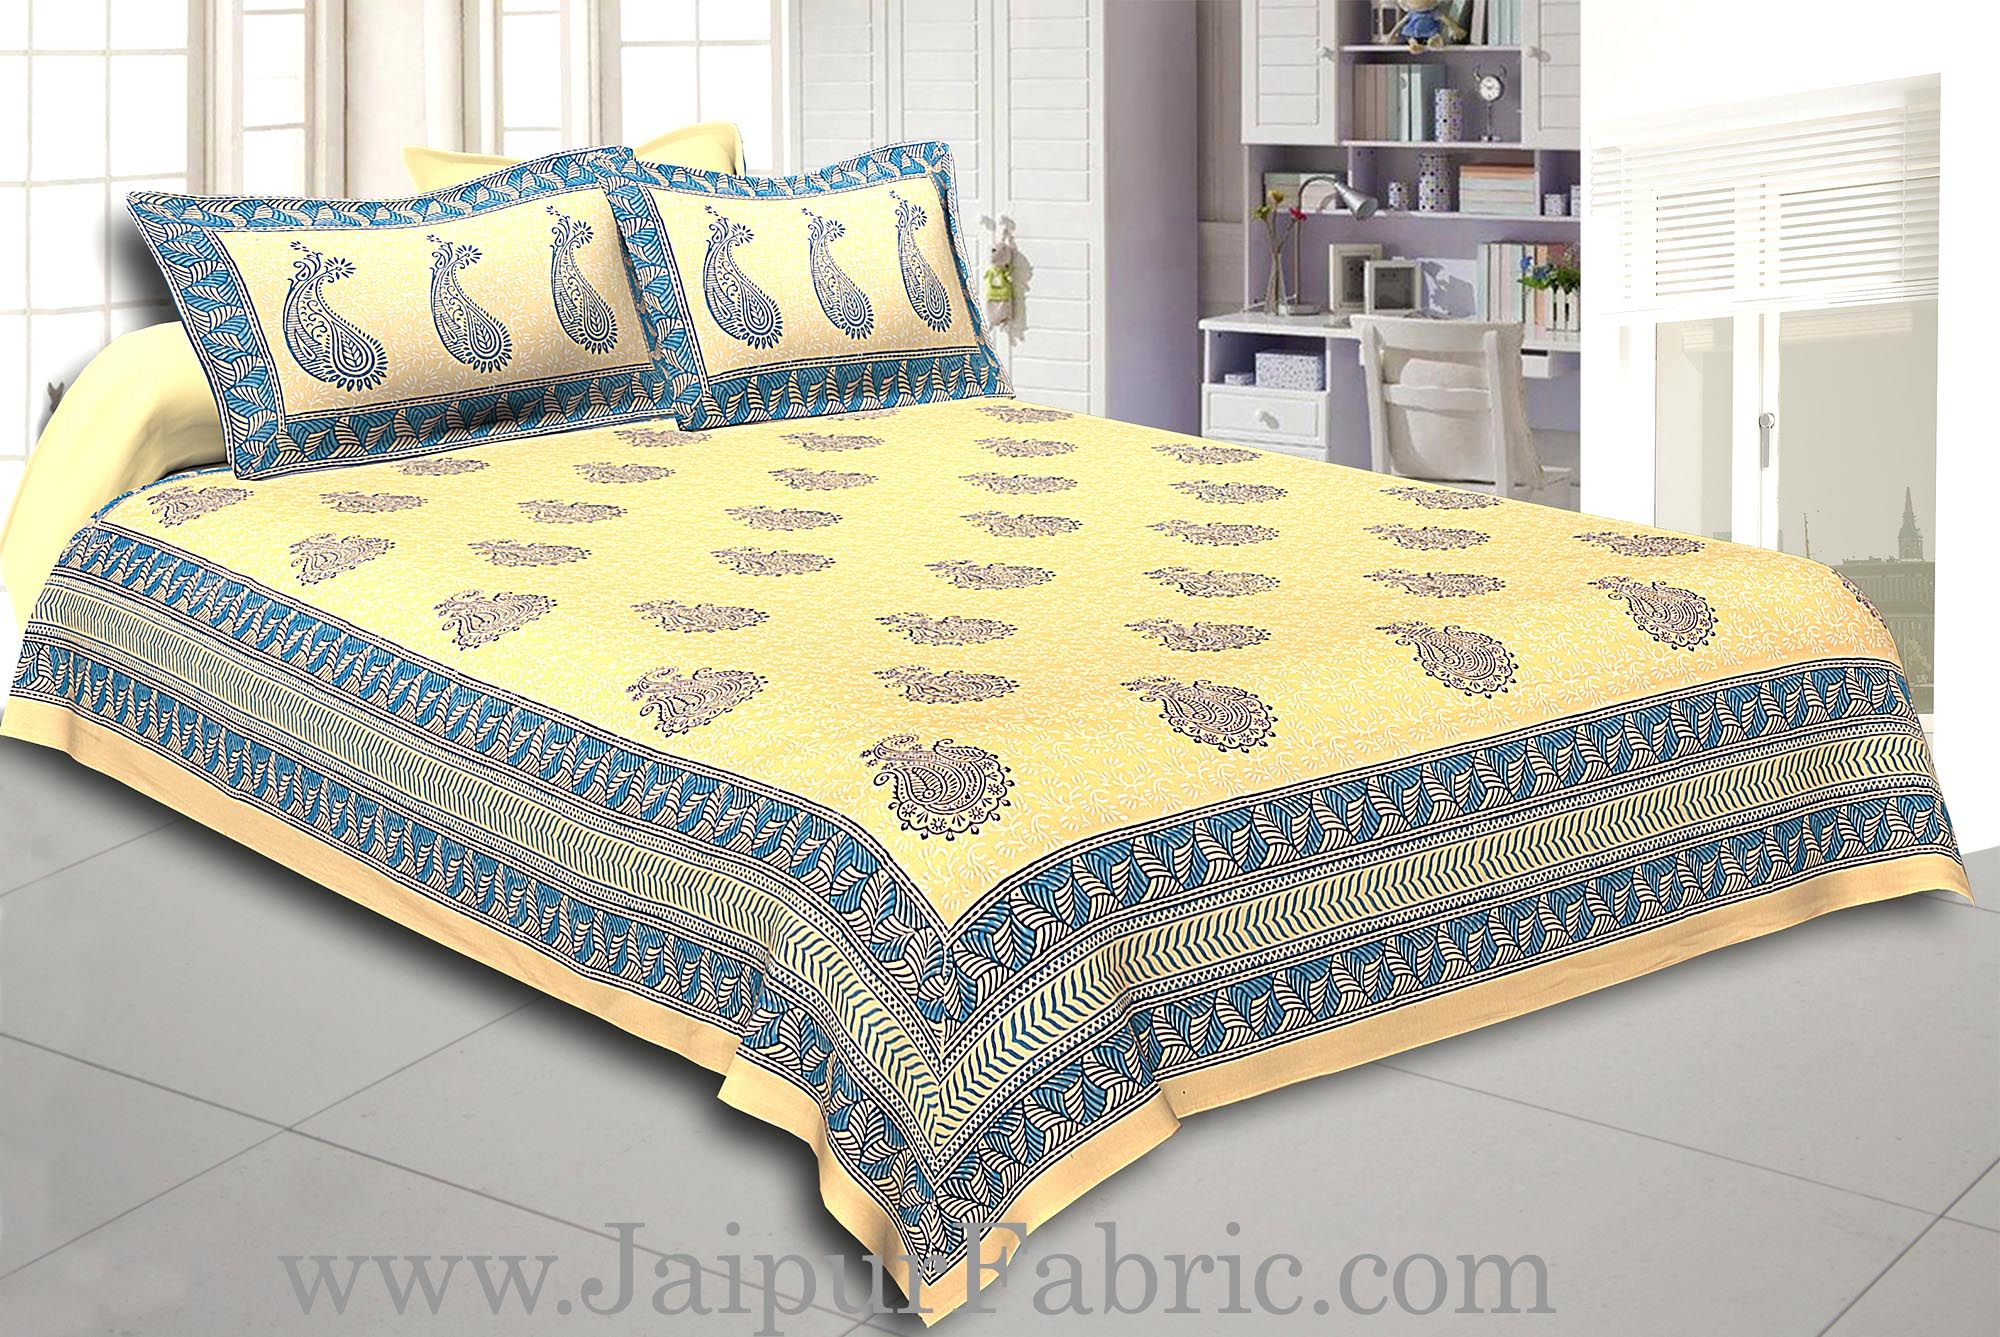 Cream Base Cream  Border Big  Blue Flower With Blue Leaf Pattern Hand Block Print Super Fine Cotton Double Bed Sheet